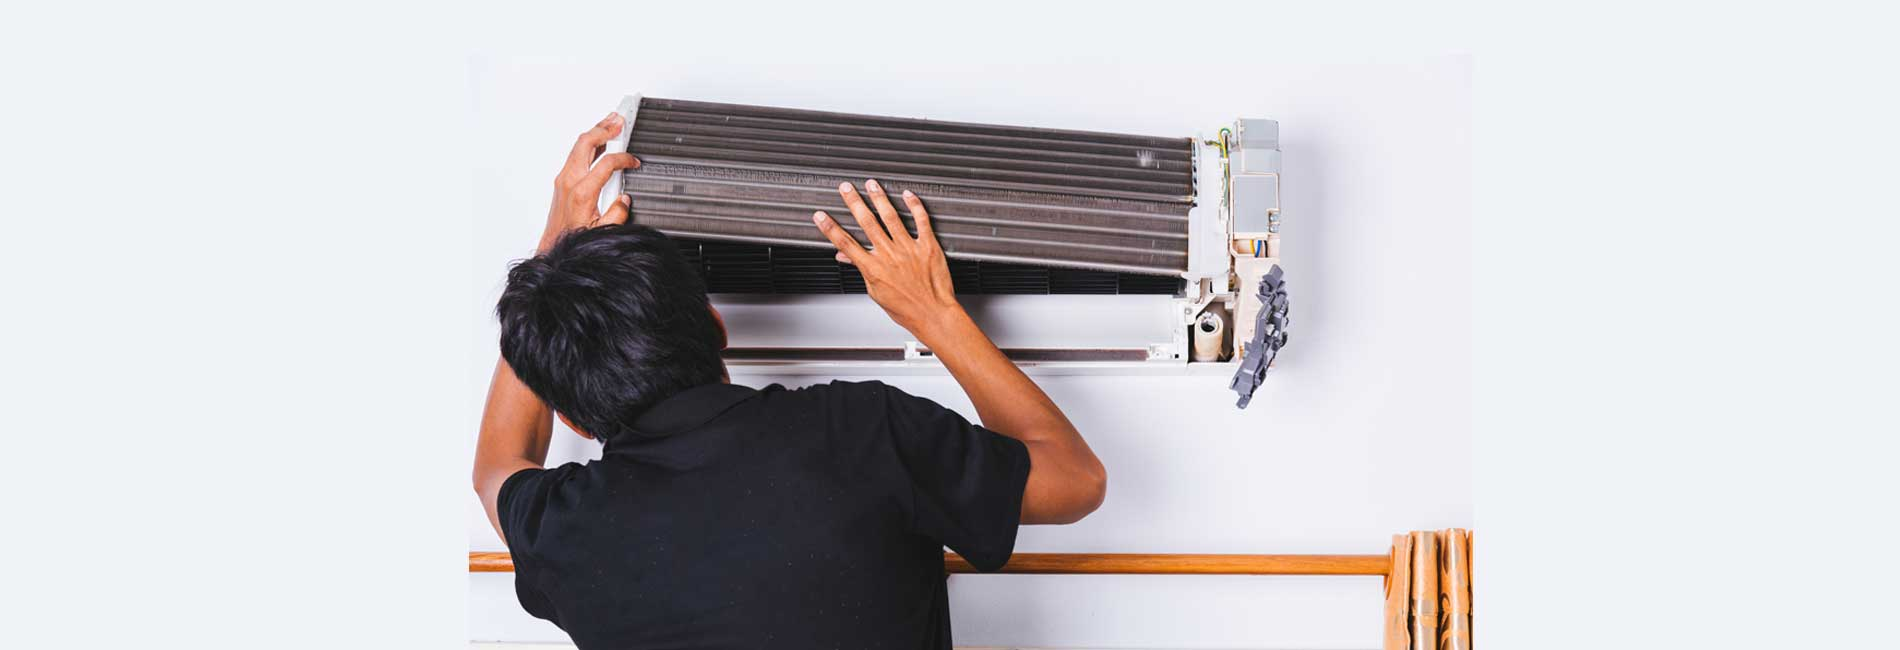 AC Installation in thandalam